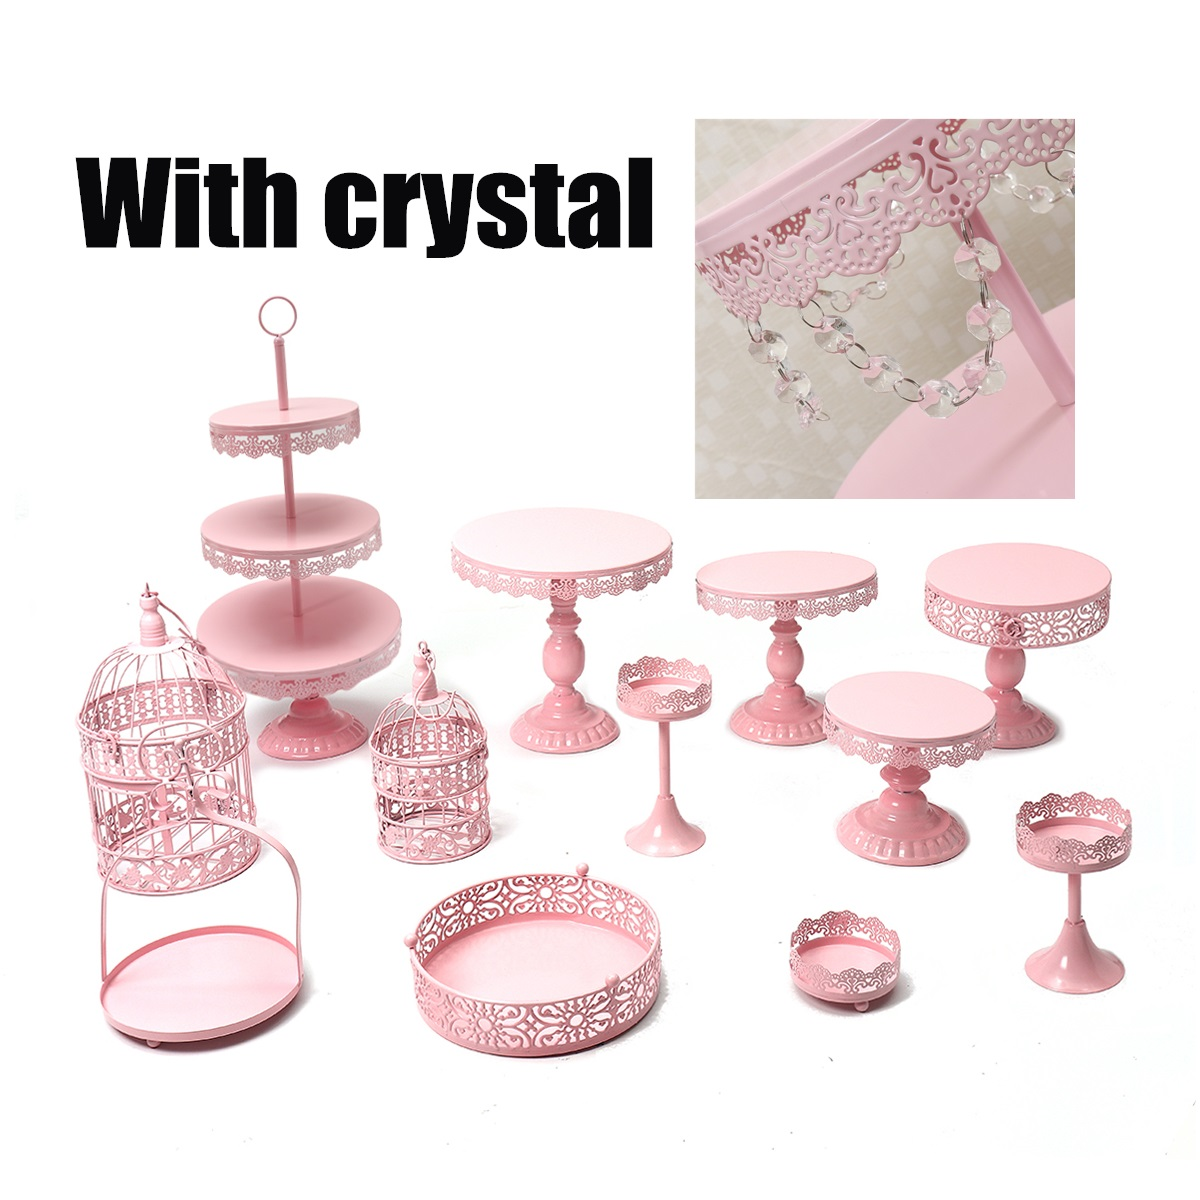 Royal Brands Carousel Cupcake Stand Holds Up To 12 Cupcakes White Elegant For All Occasions Birthday Baby Shower Parties